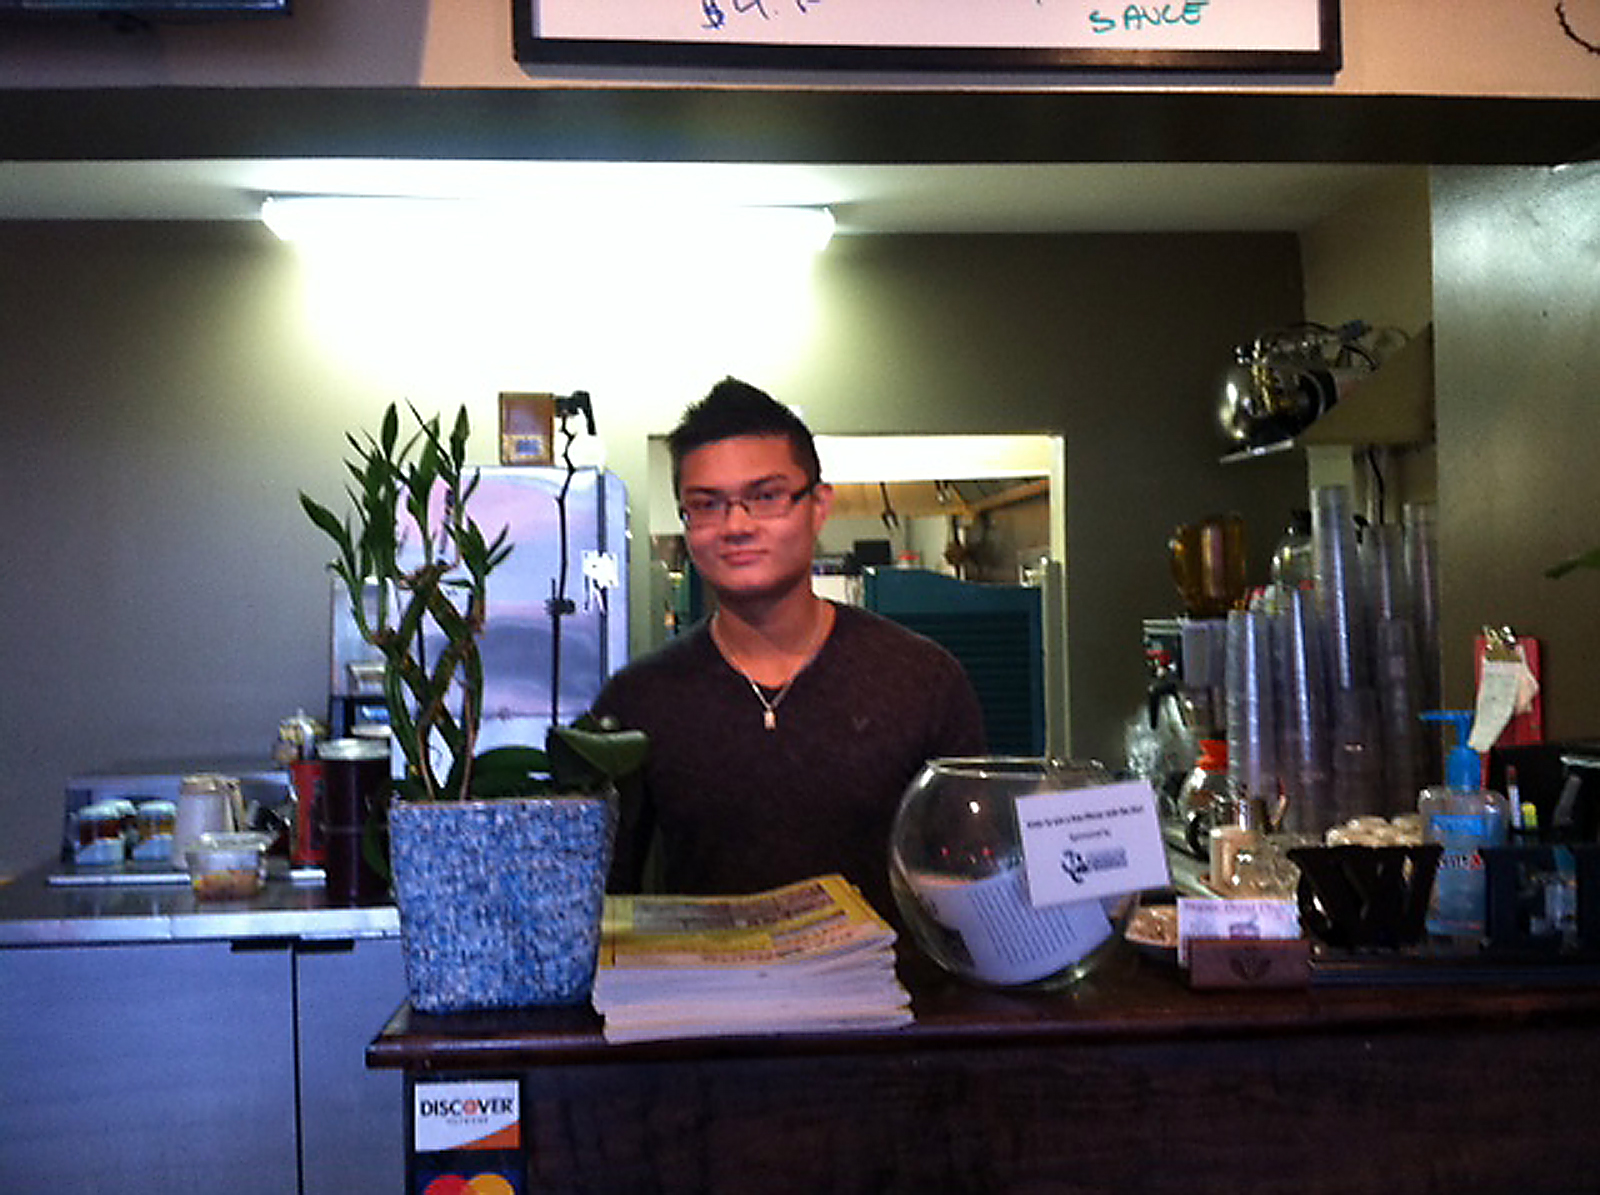 Tony Nguyen, chef and manager of Super Bowl Pho, said the Westfield restaurant is expanding its menu items from 73 to 103 items.